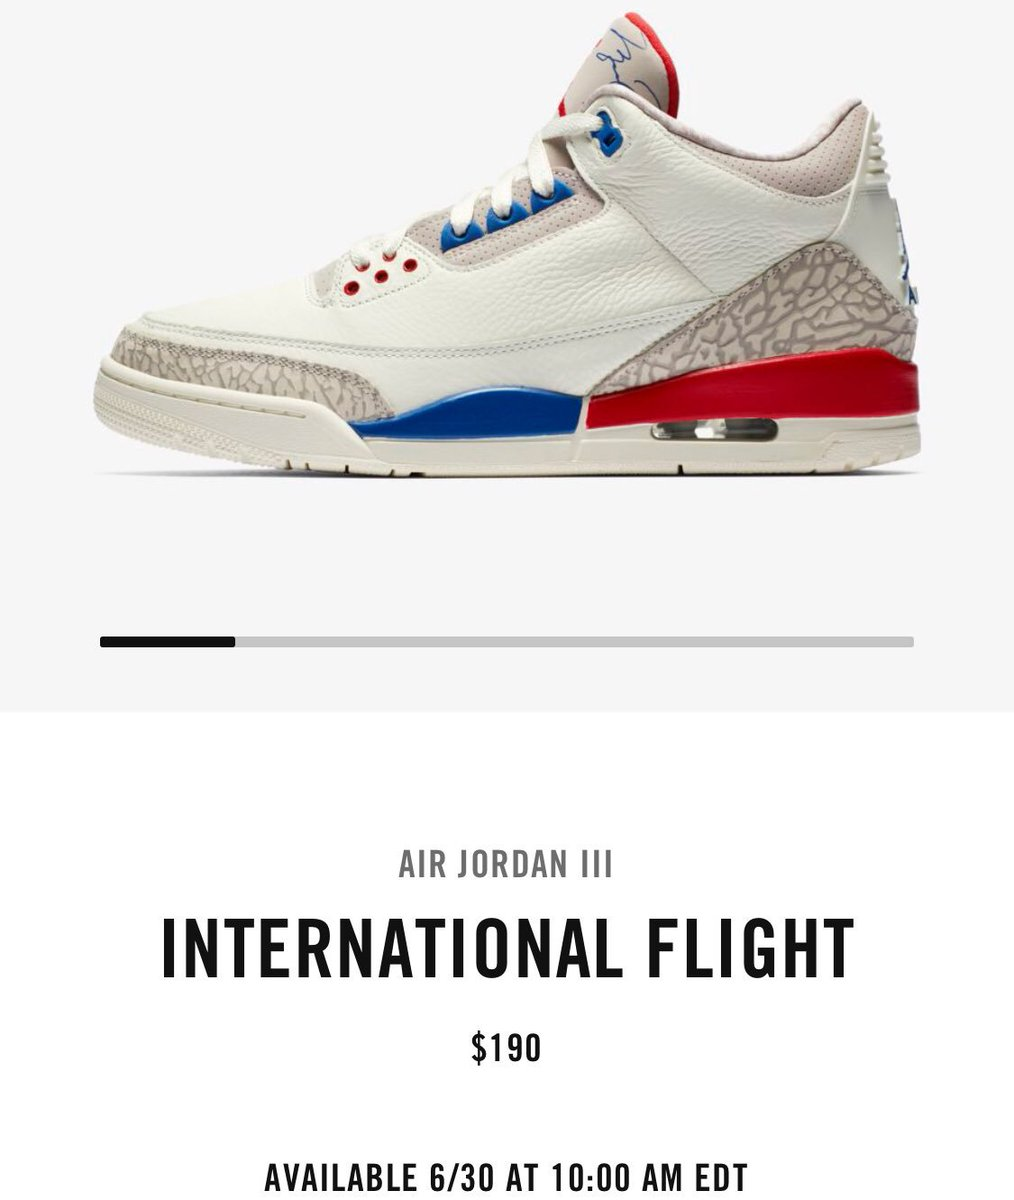 c0ea1000a6b3 ... 10 am ET for  190 on SNKRS and select retailers Westbrook 10  https   bit.ly 2to12LS Int l Flight 3 https   bit.ly 2ttM1Y4  snkr twitrpic. twitter.com  ...